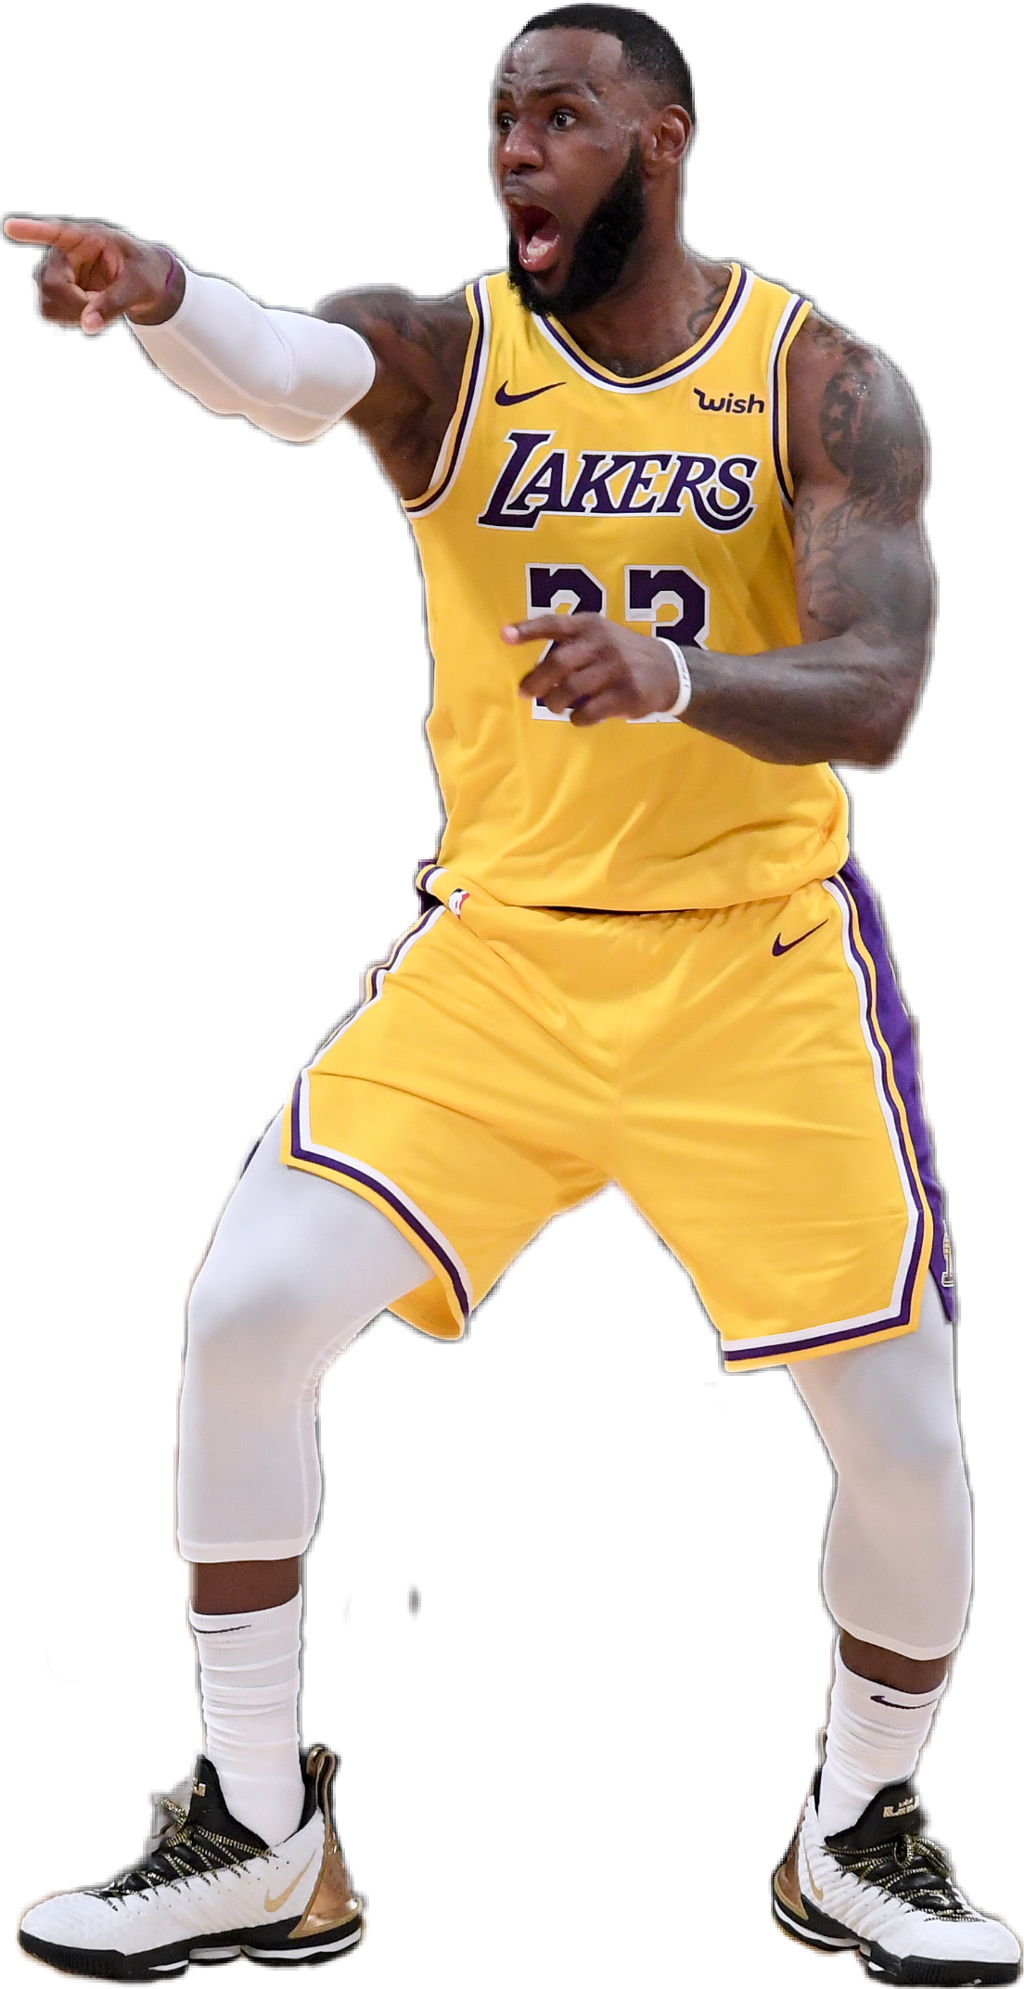 Lebron James Png Lakers Free Lebron James Lakers Png Transparent Images 47022 Pngio